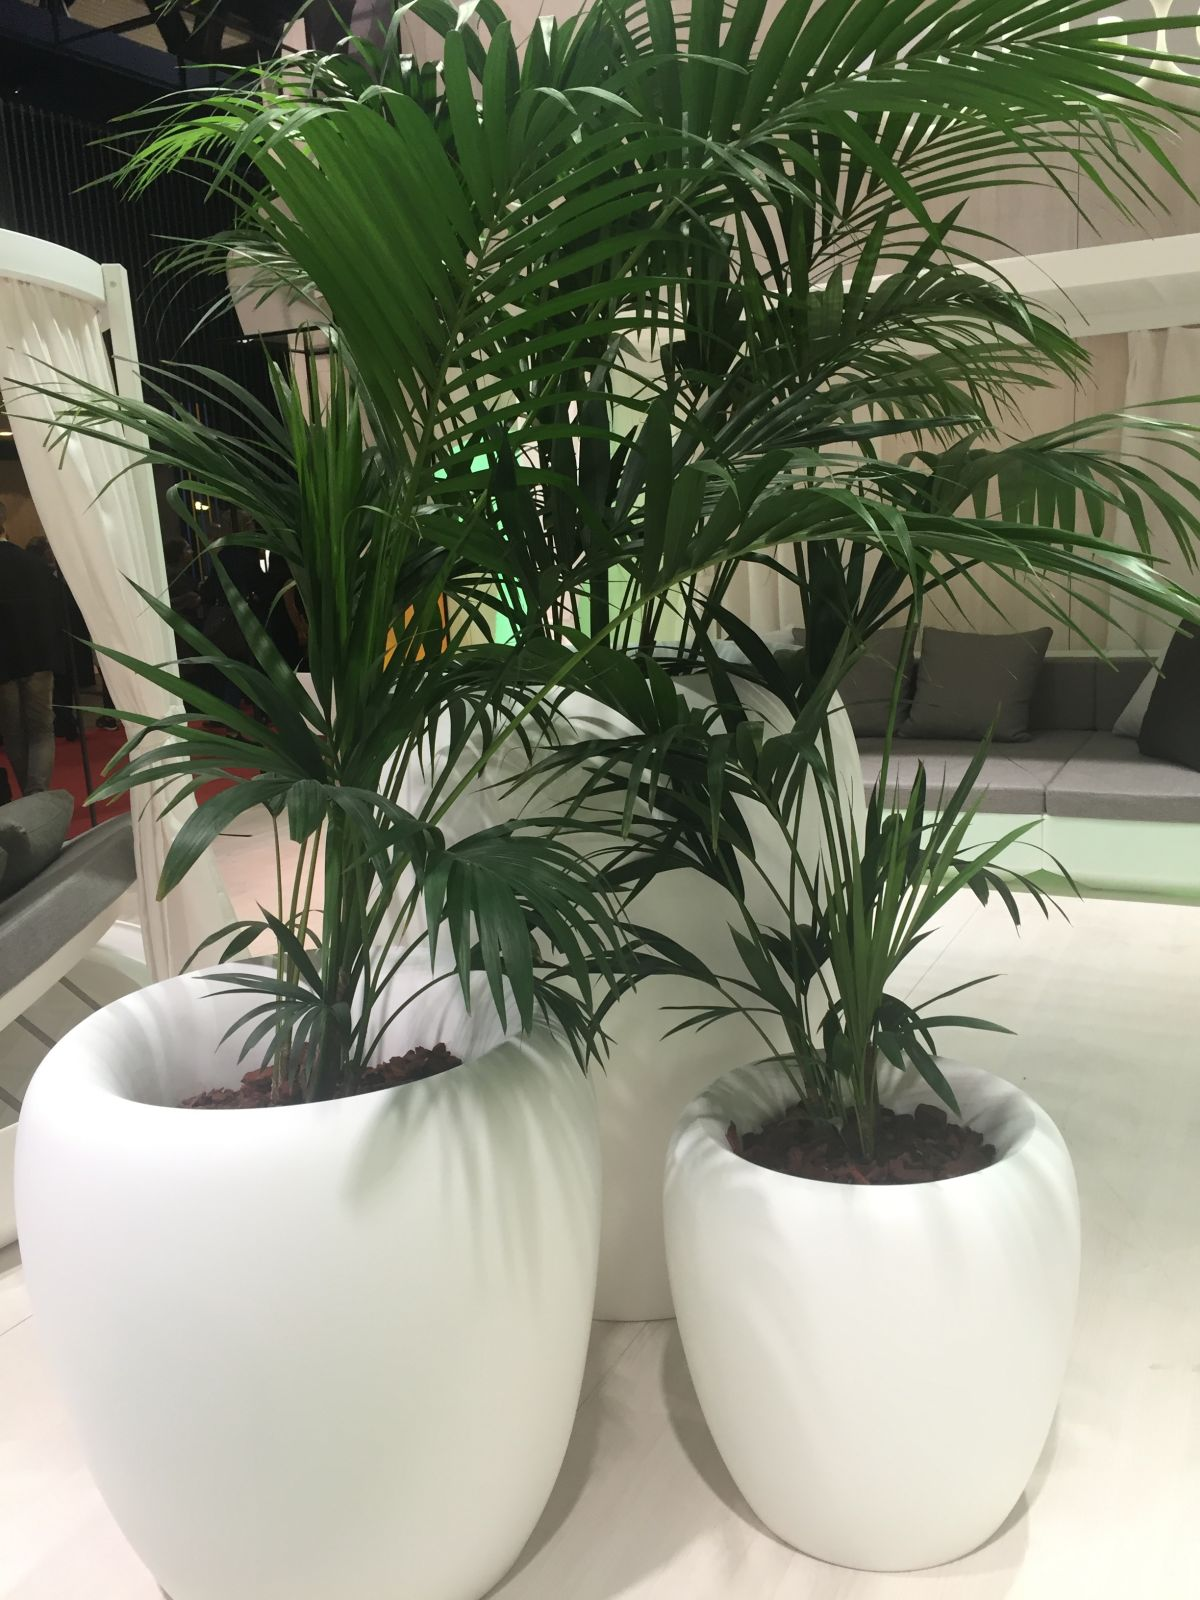 Areca palm and white large pots